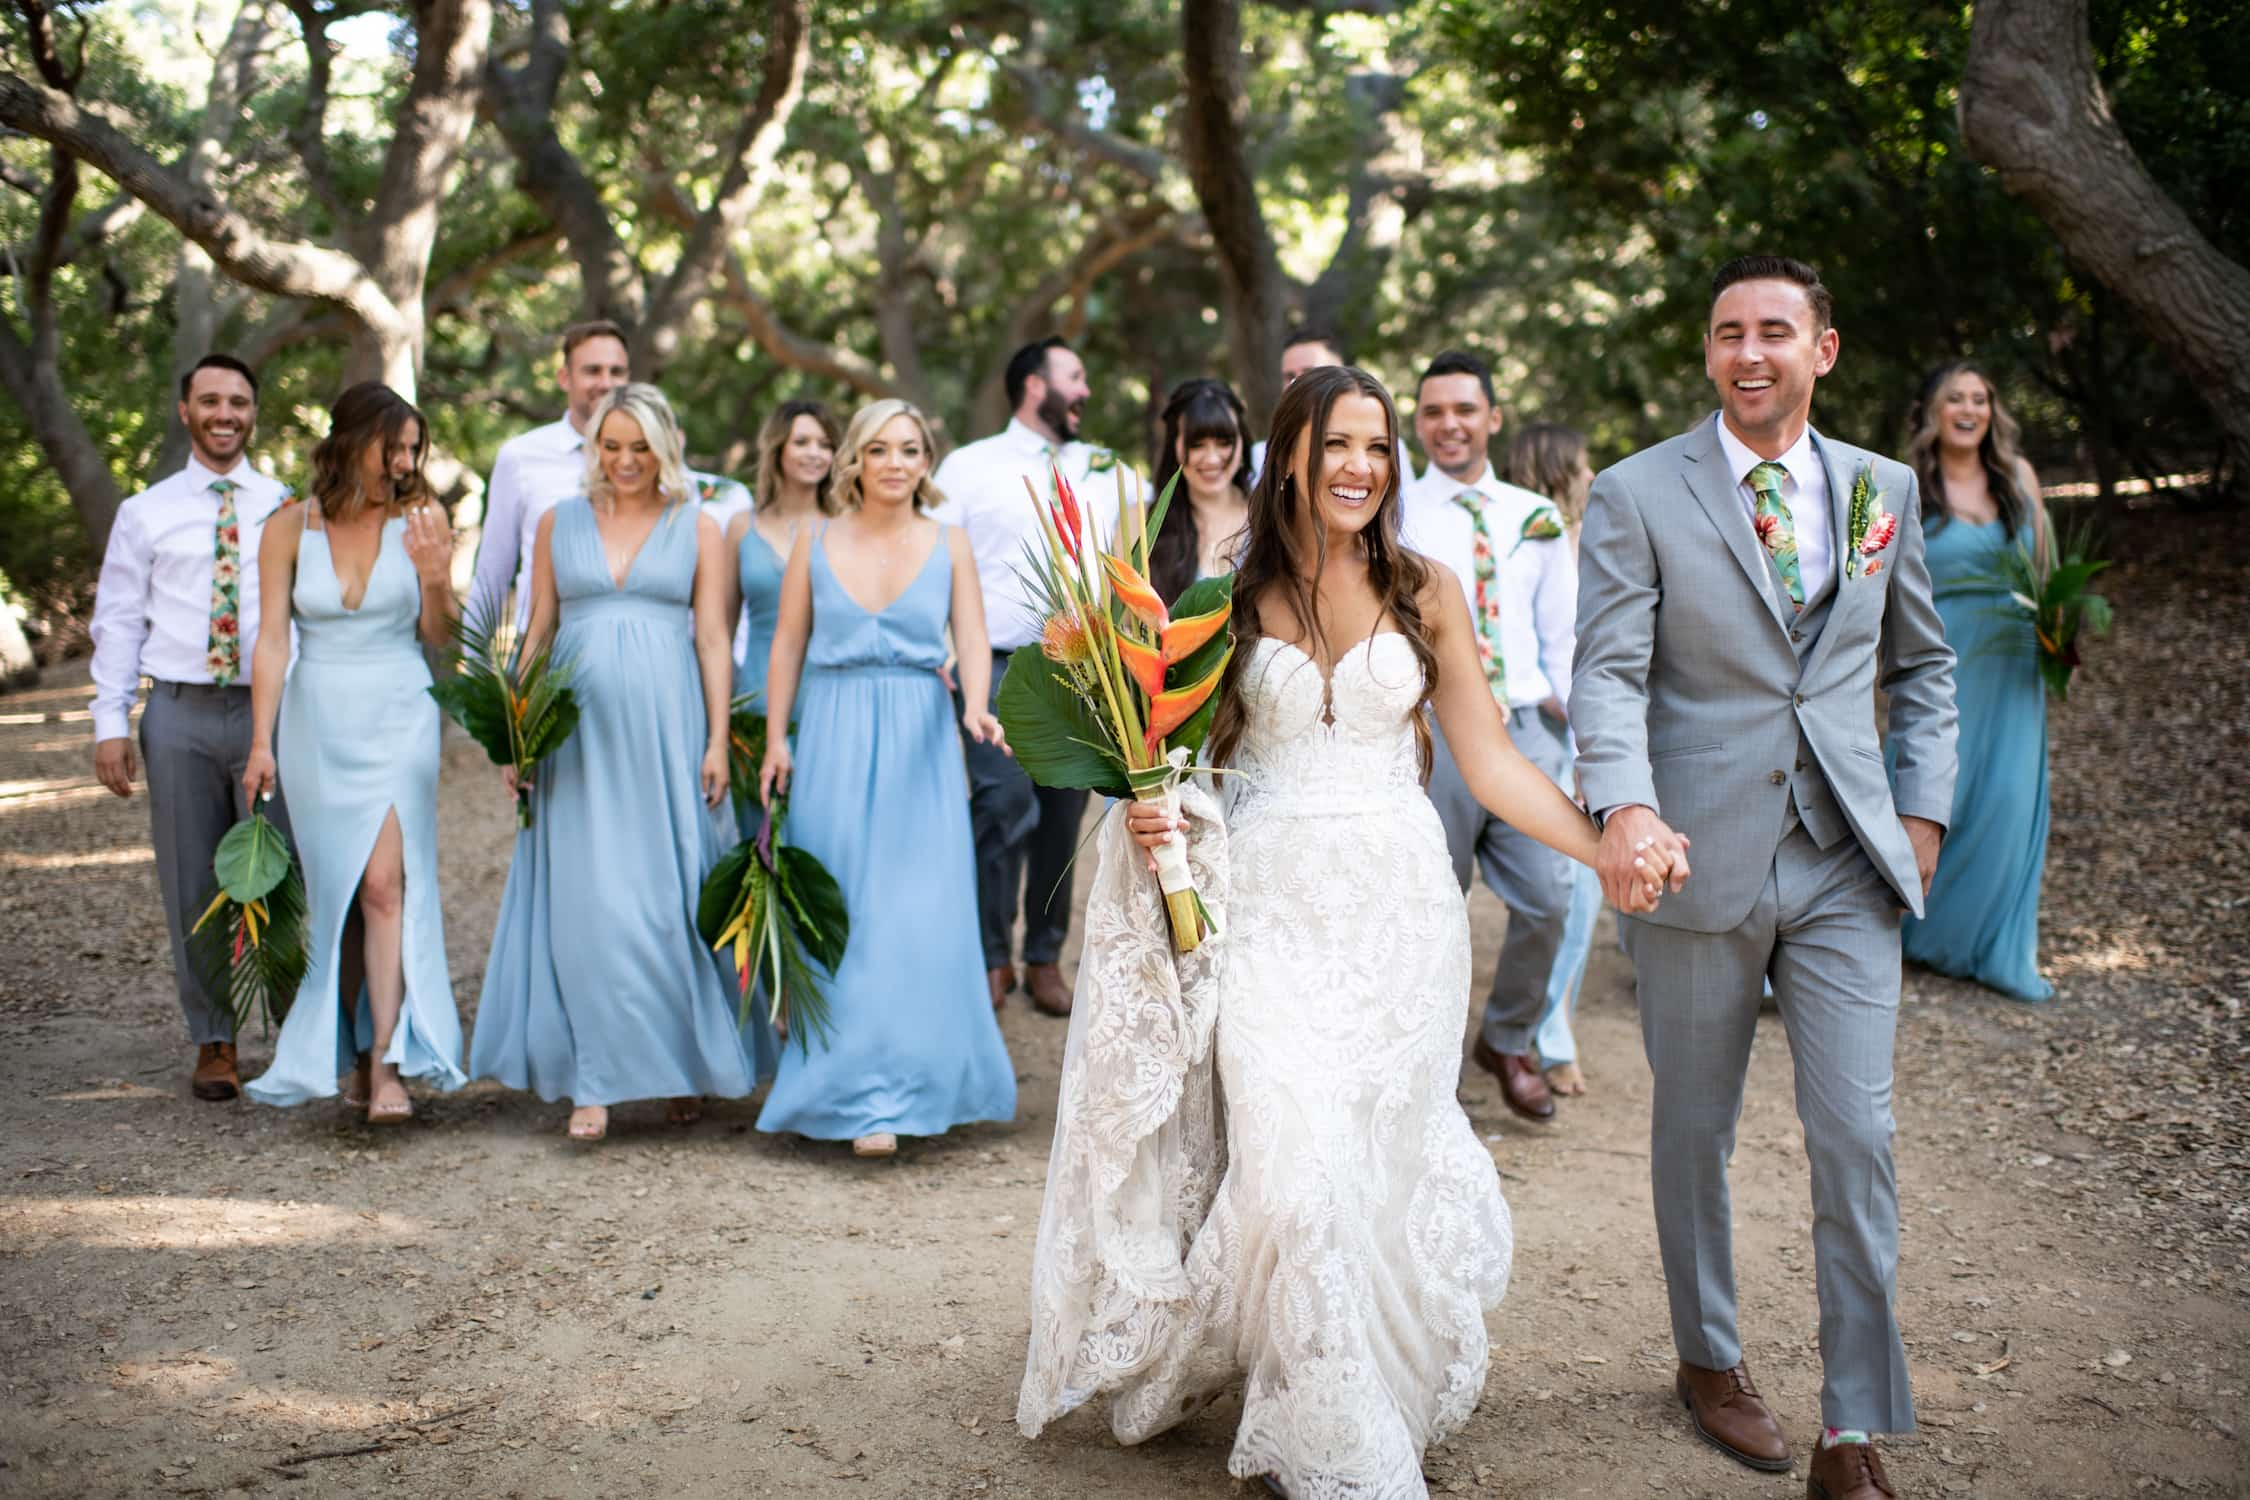 Bride and groom walking with bridal party in San Diego.